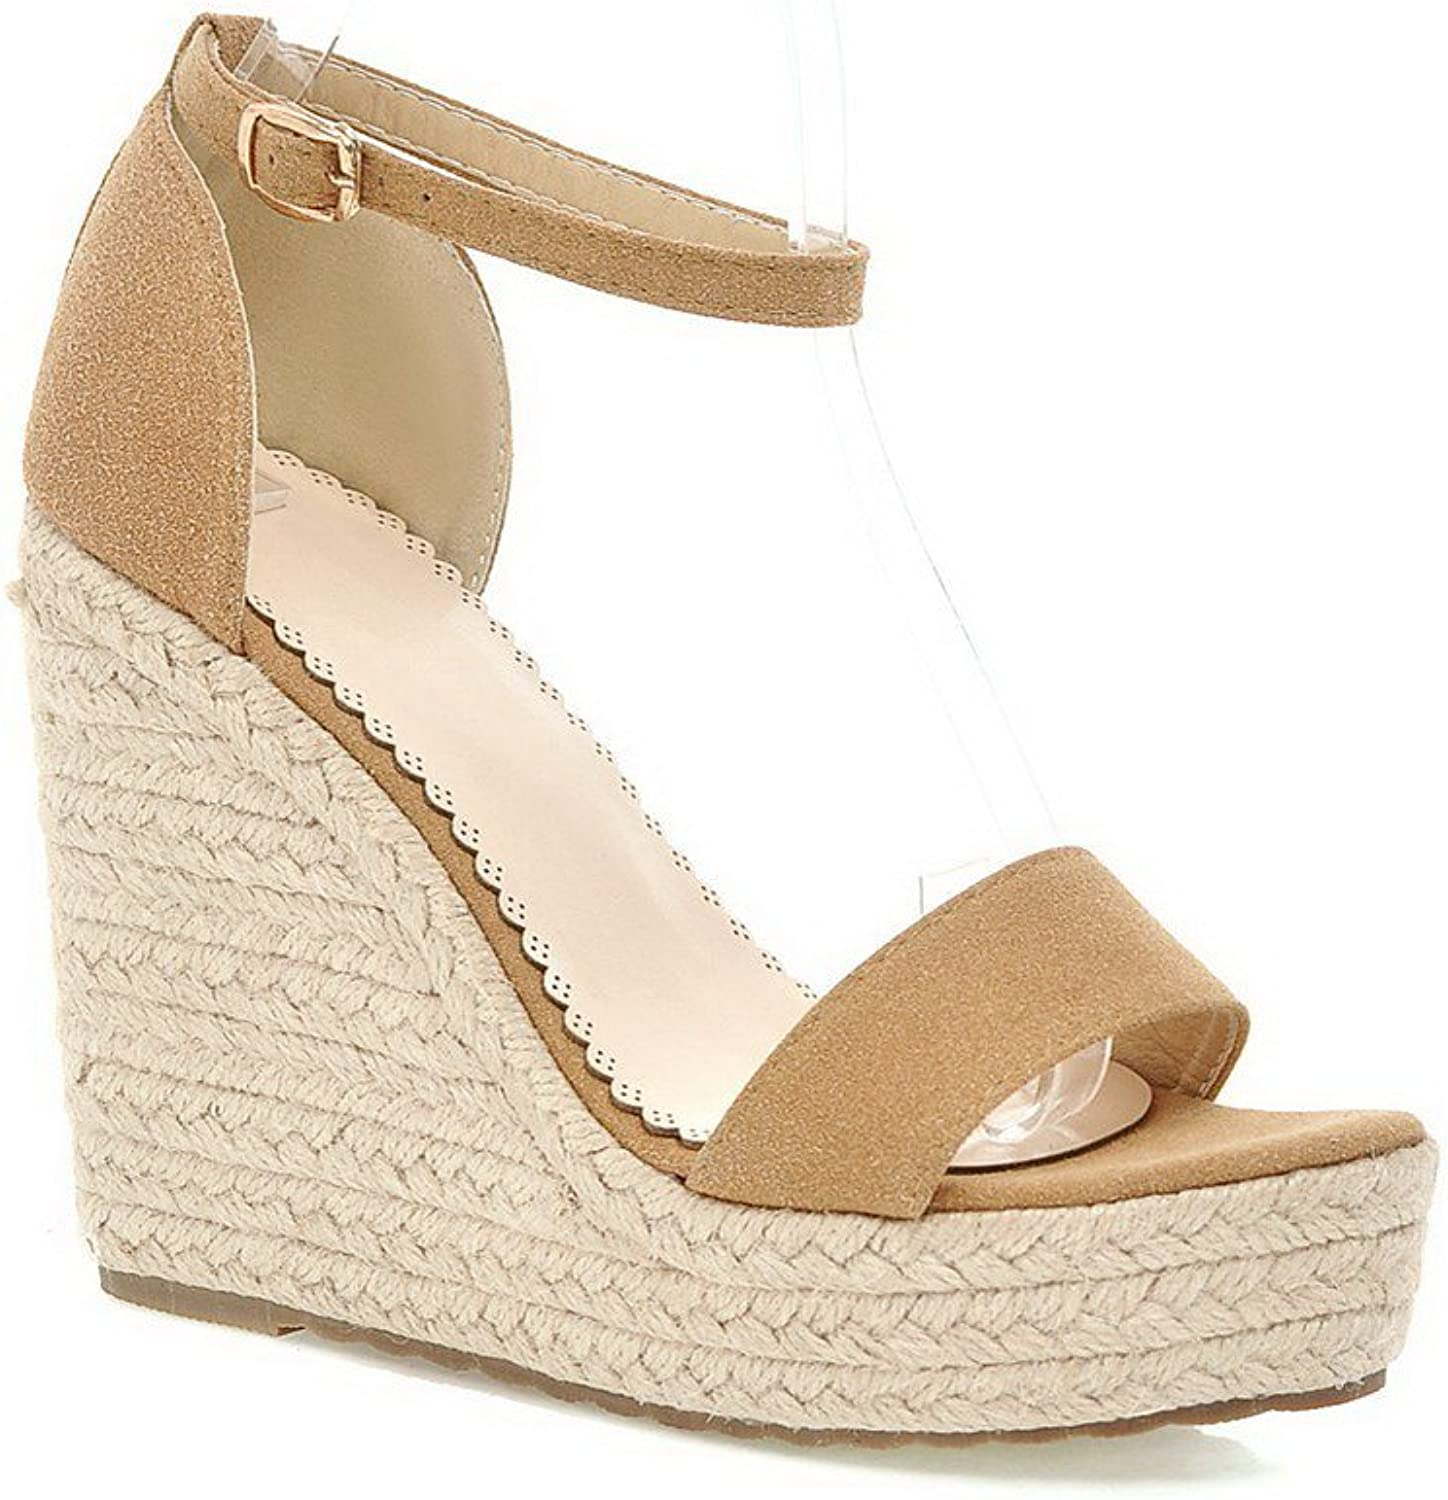 AmoonyFashion Women's Imitated Suede Solid Buckle Open Toe High Heels Sandals